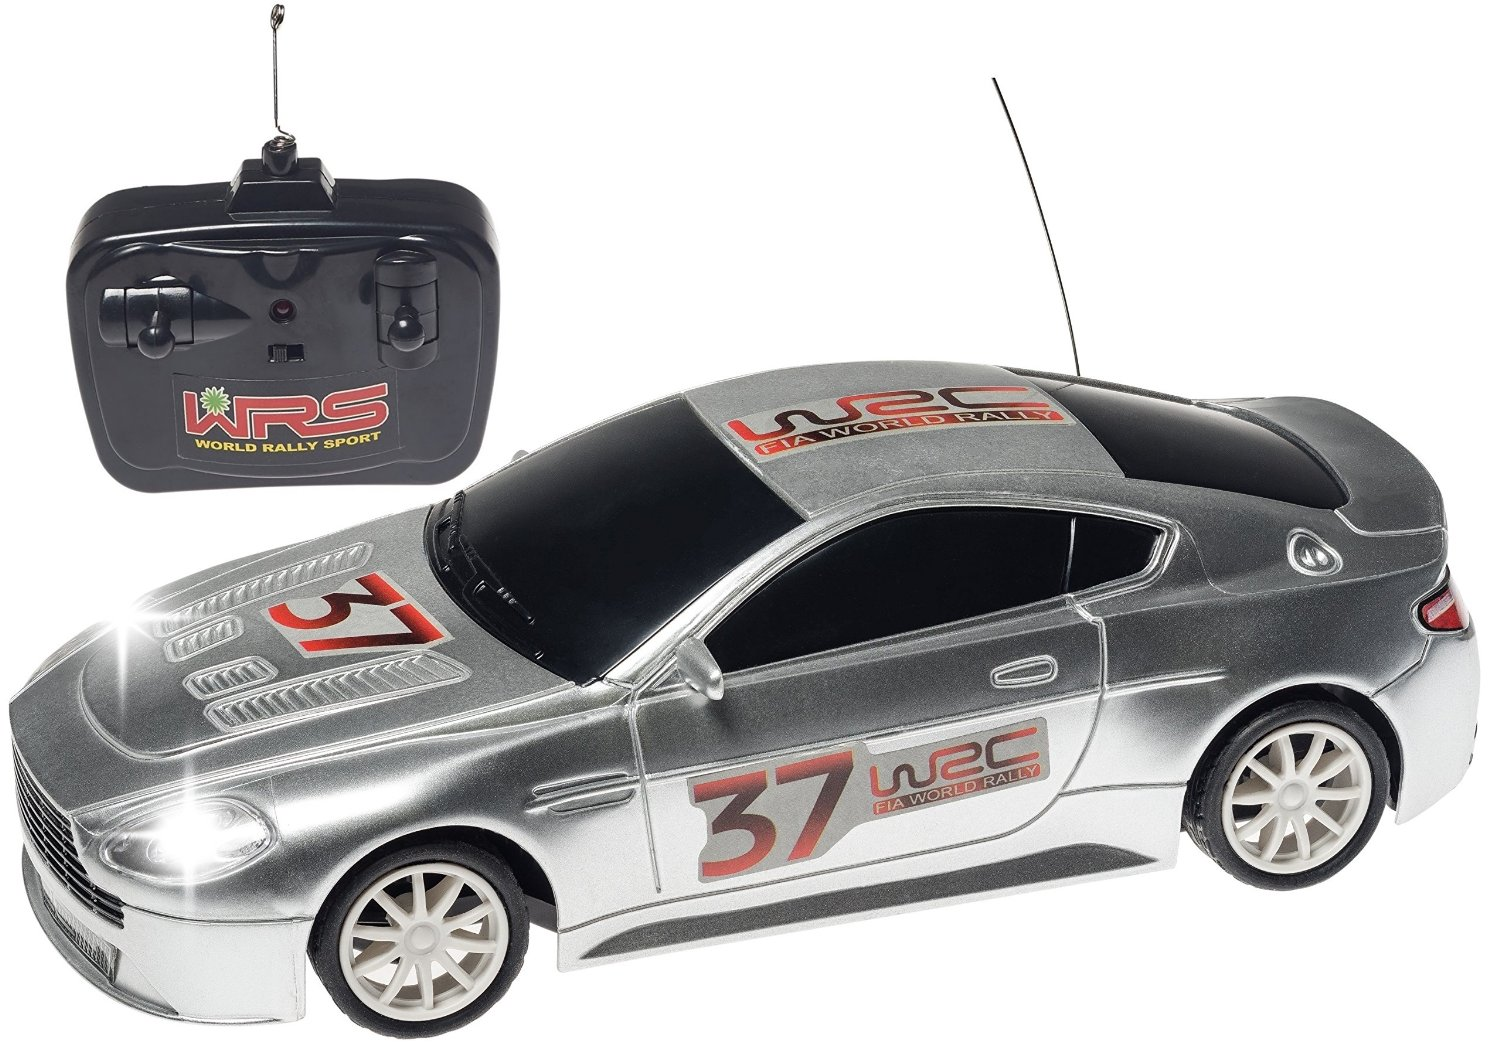 Top Race® 4ch Rc Remote Control Racing Car Aston Martin with Head Lights Lights